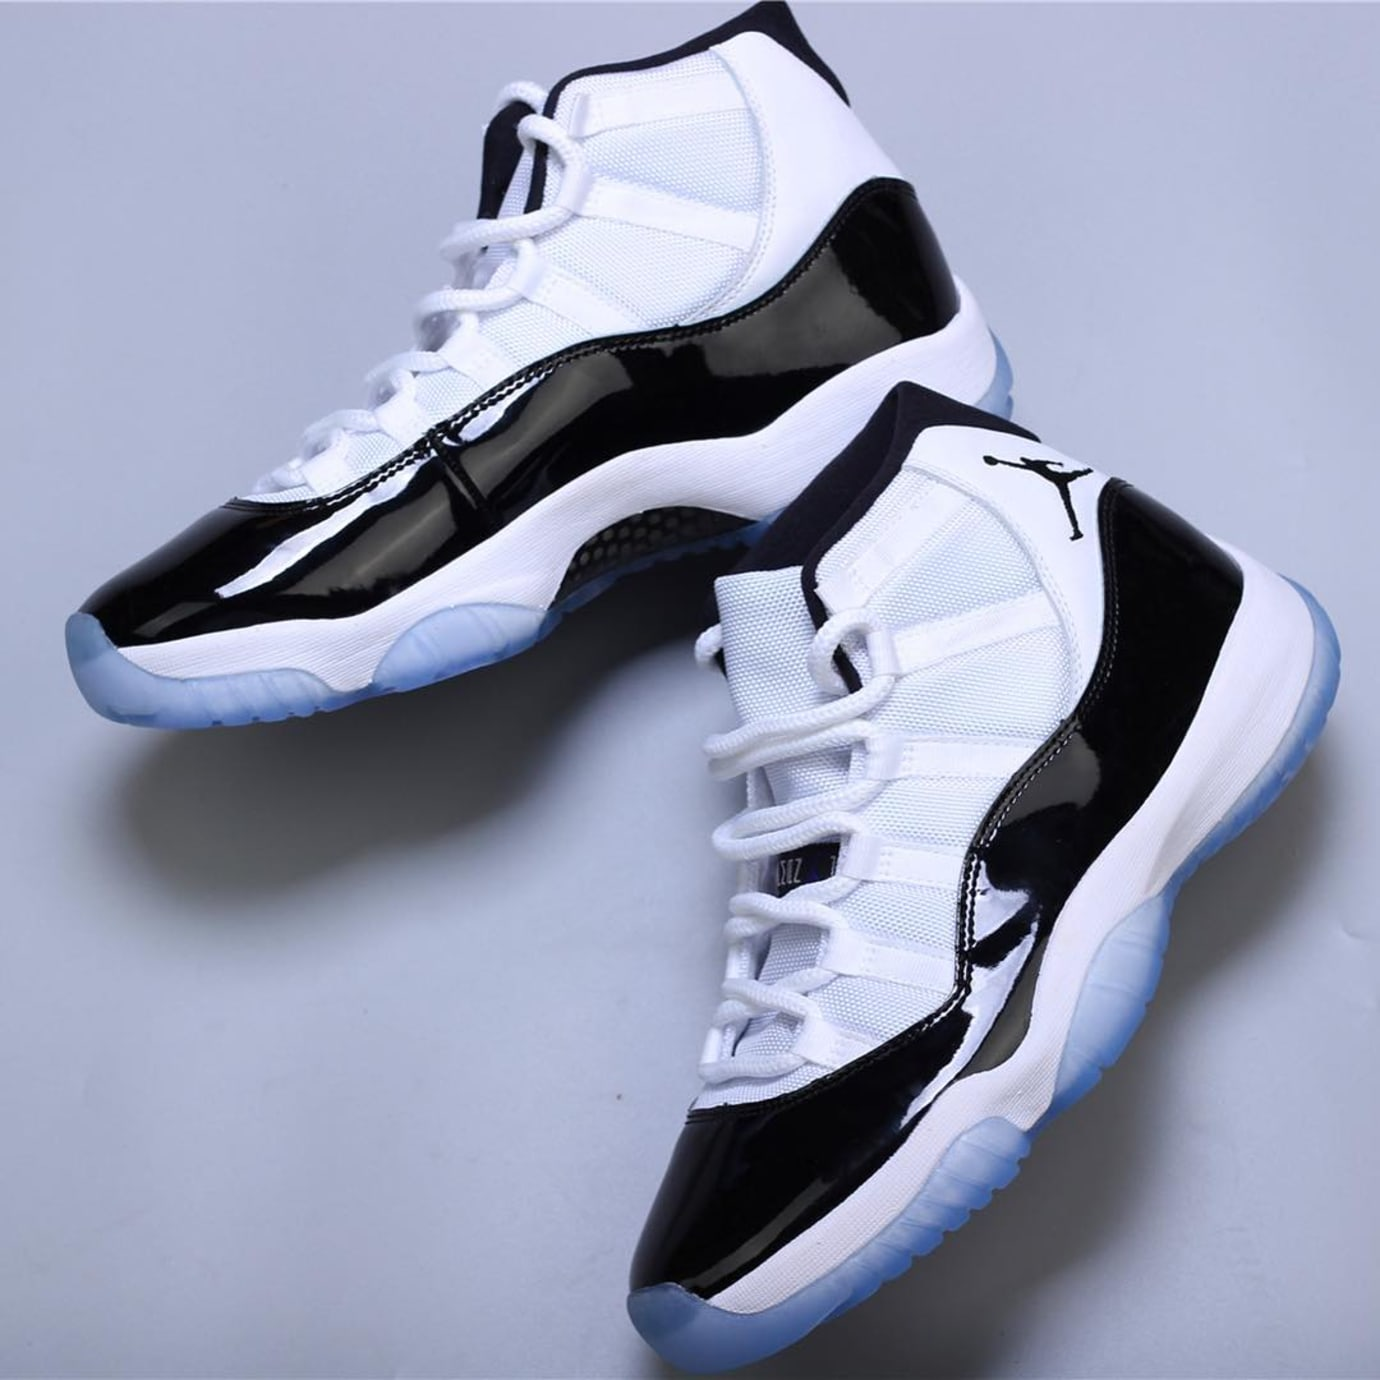 5866ceabdd26 Image via hanzuying · Air Jordan 11 XI Concord 2018 Release Date 378037-100  Side